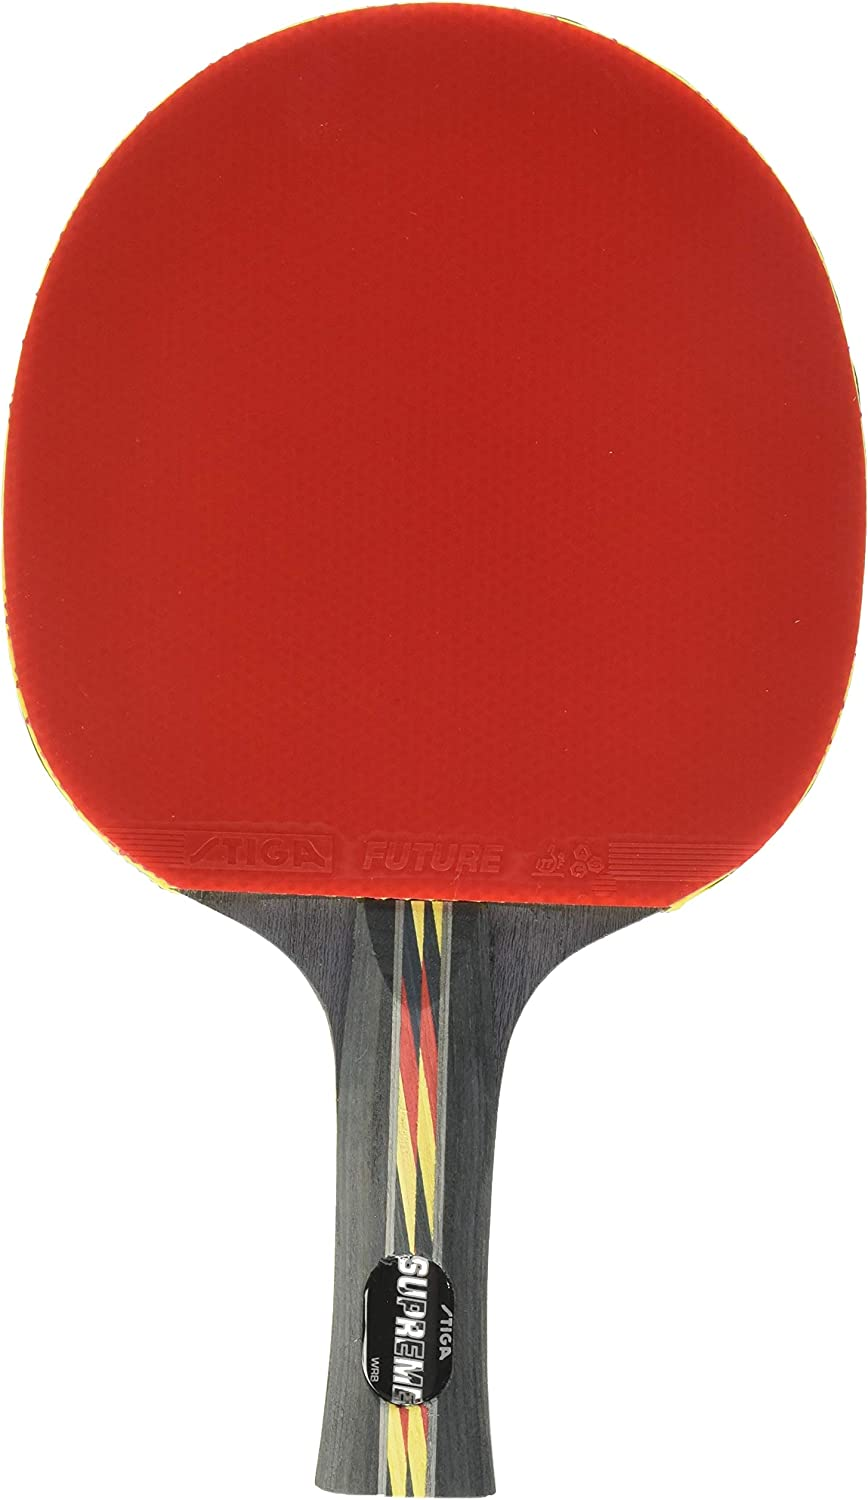 STIGA Supreme Performance-Level Table Tennis Racket made with ITTF Approved Rubber for Tournament Play - Features STIGA ACS for Control and Speed : Top Ping Pong Paddle : Sports & Outdoors